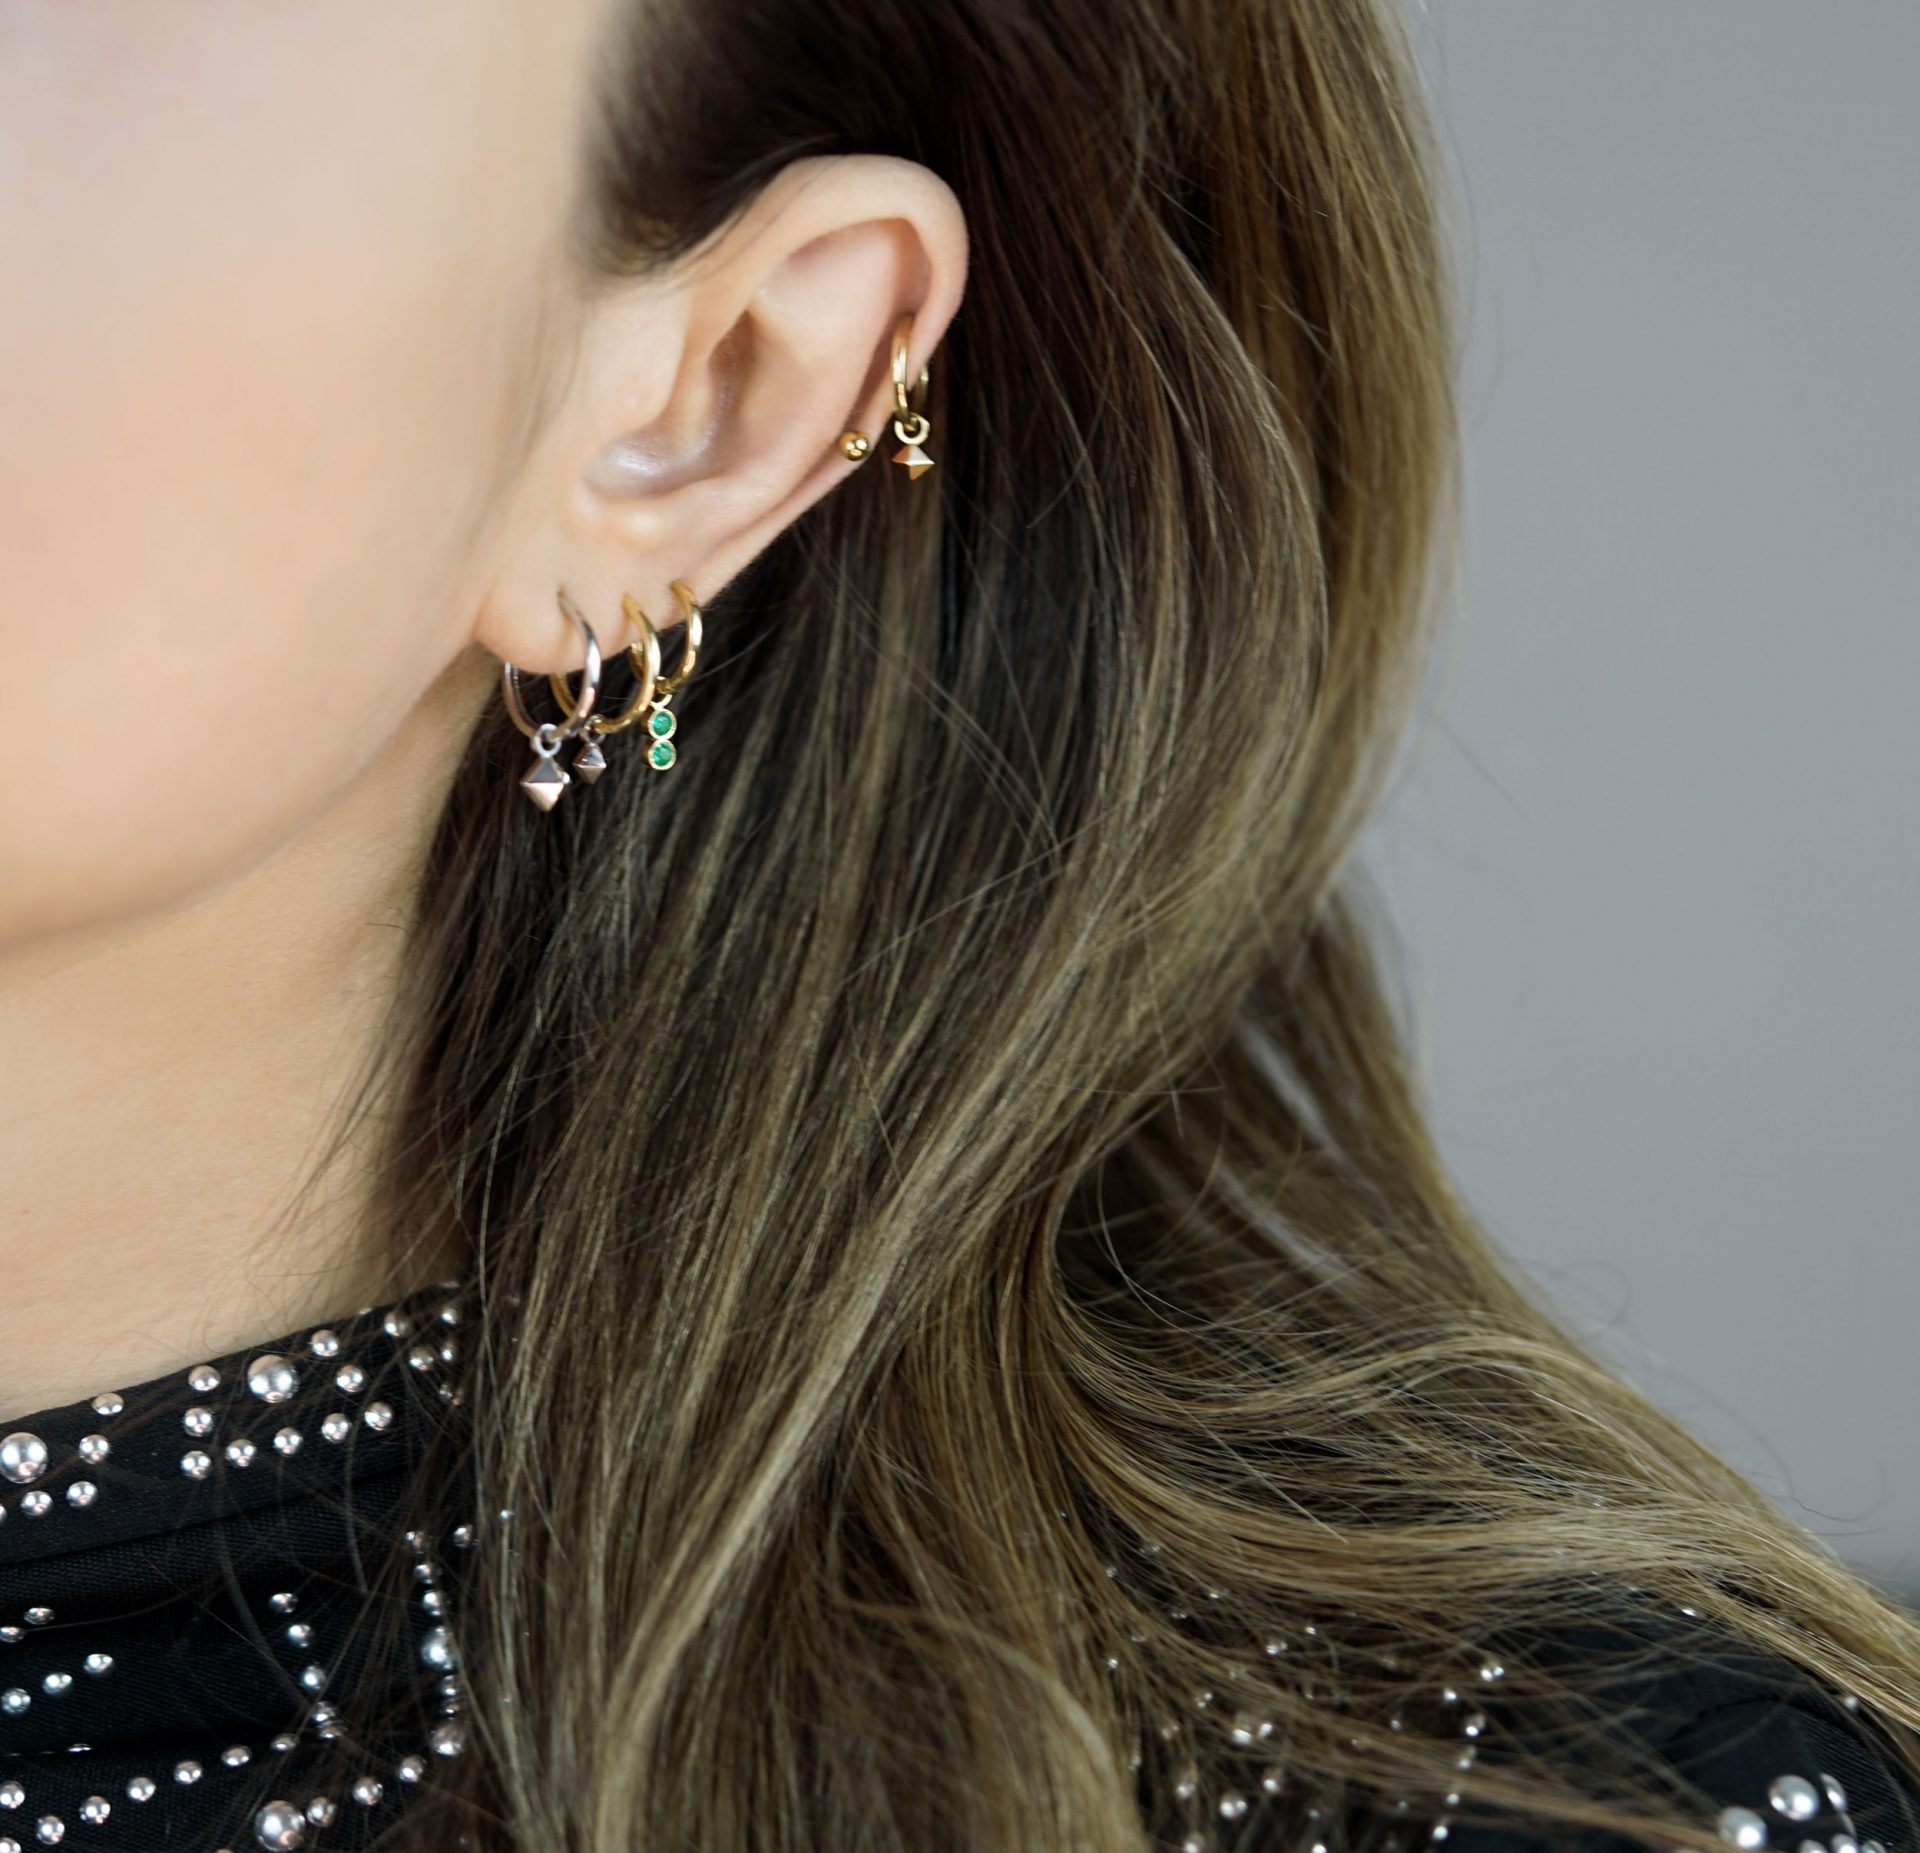 solid-18k-gold-pyramid-shape-charms-for-huggie-hoop-earrings-lena-cohen-luxury-piercing-jewellery-london